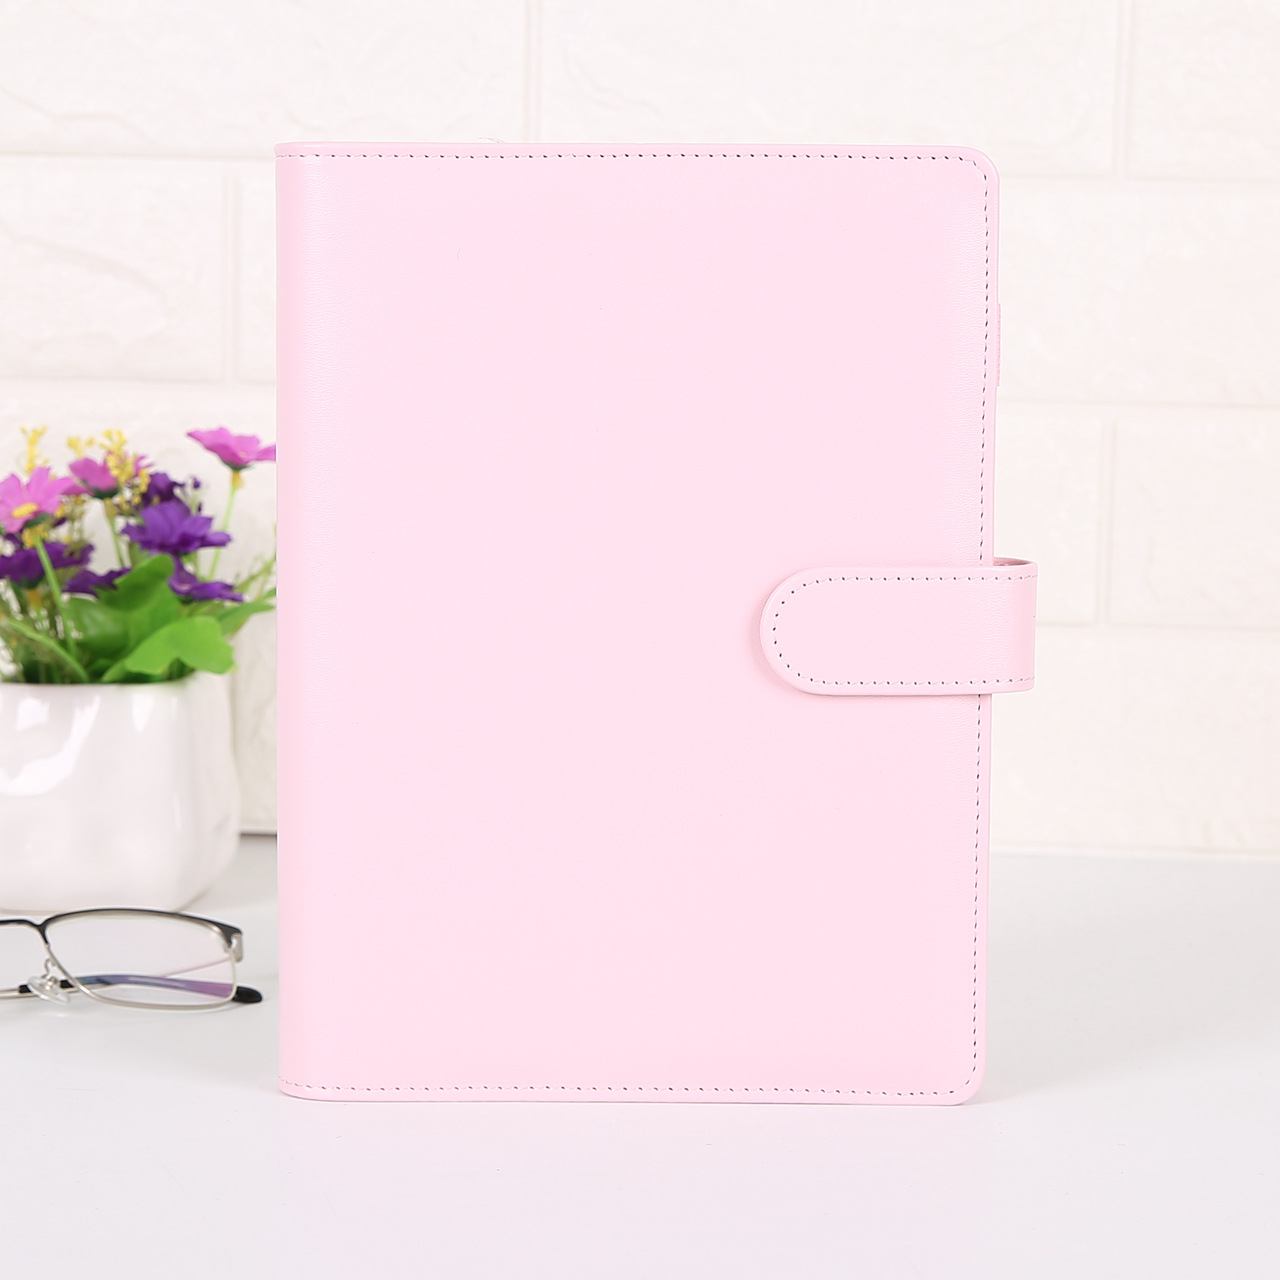 Luxury Gift Stationery Wholesale Buy Macaron Small Binder Diary Notebook PU Leather 6 Rings A5 A6